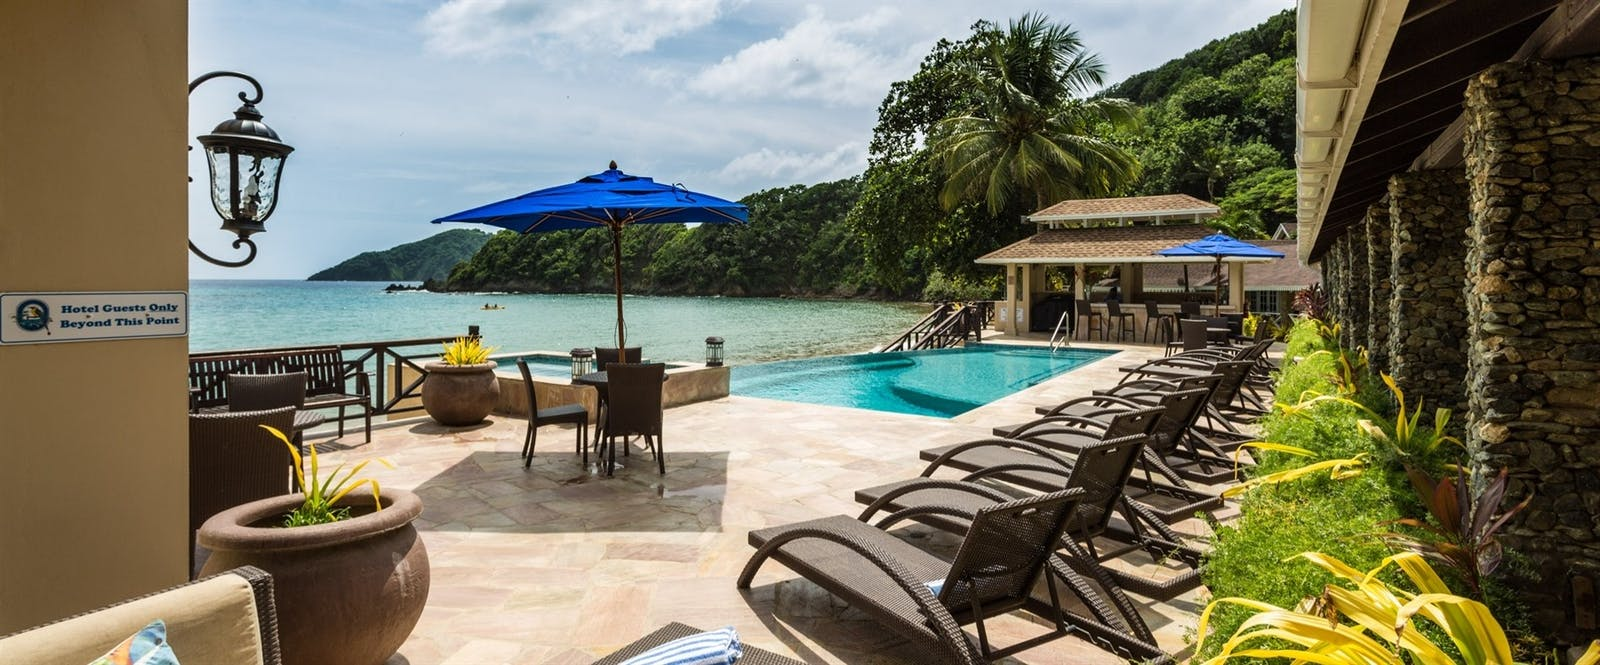 Pool and Sun Deck at Blue Waters Inn, Tobago